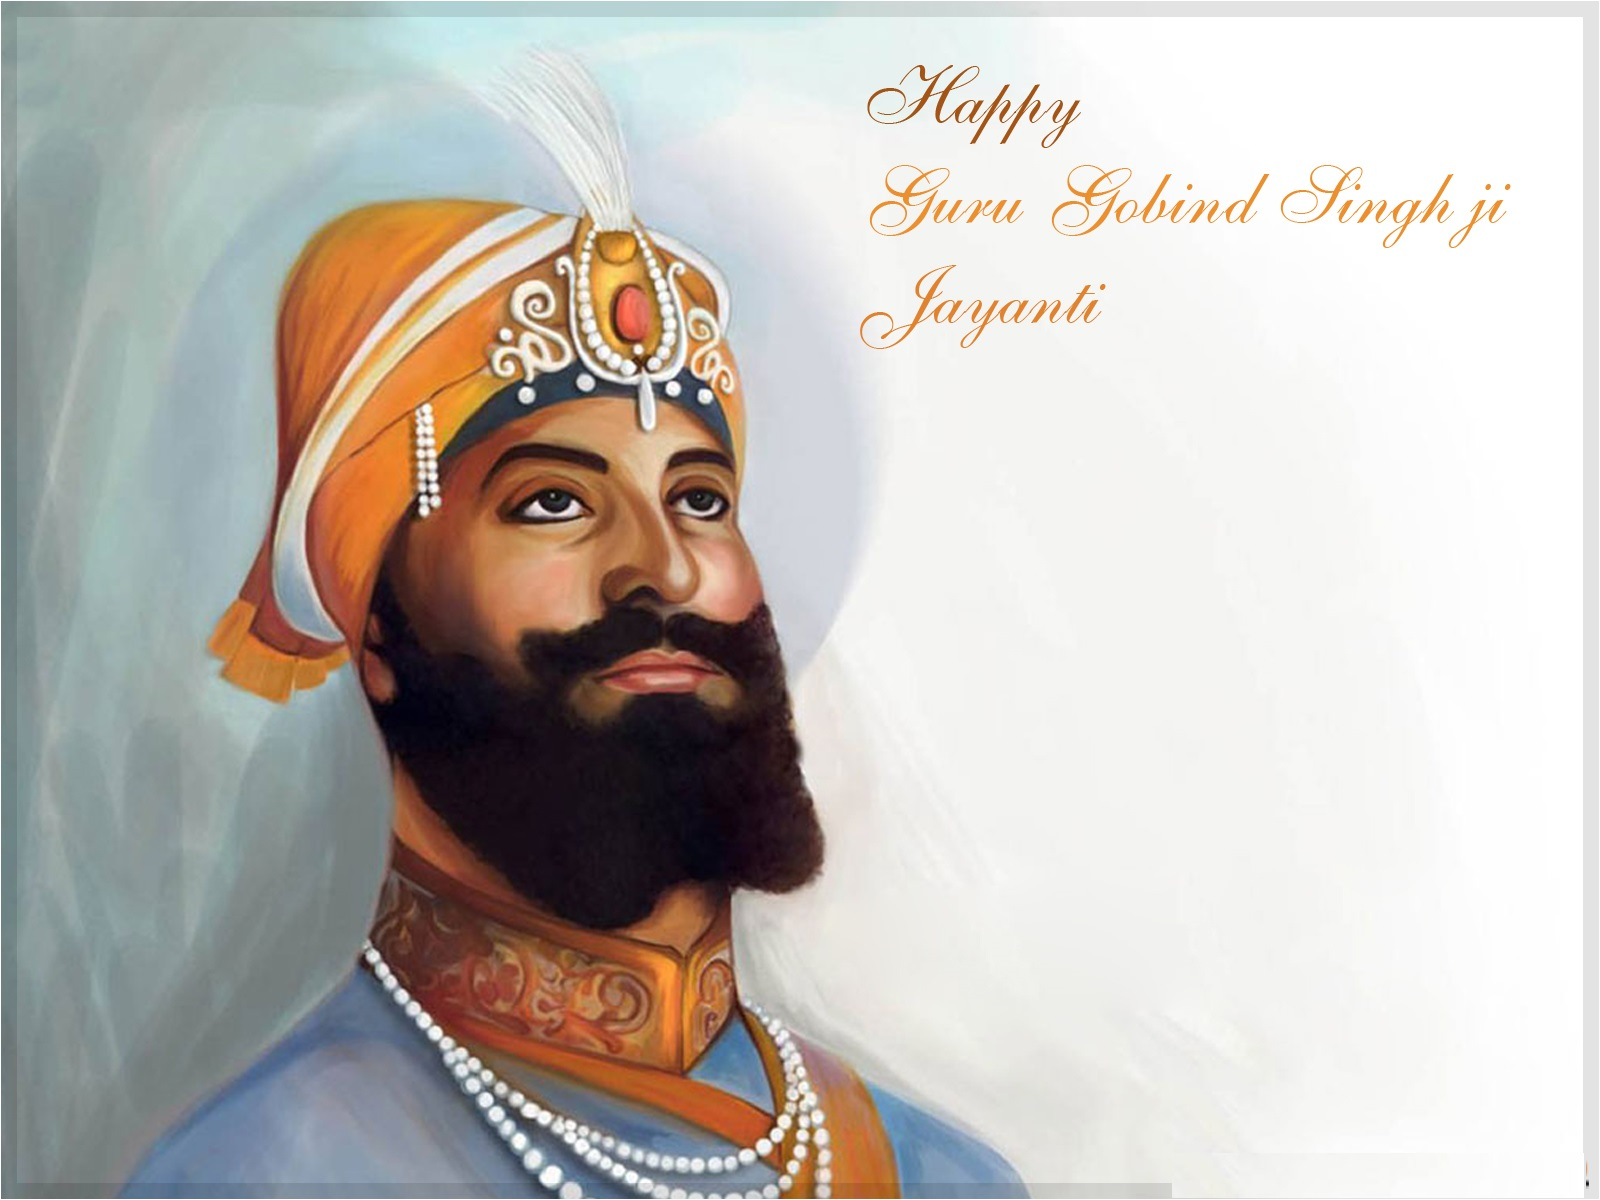 Photos of Guru Gobind Singh Jayanti